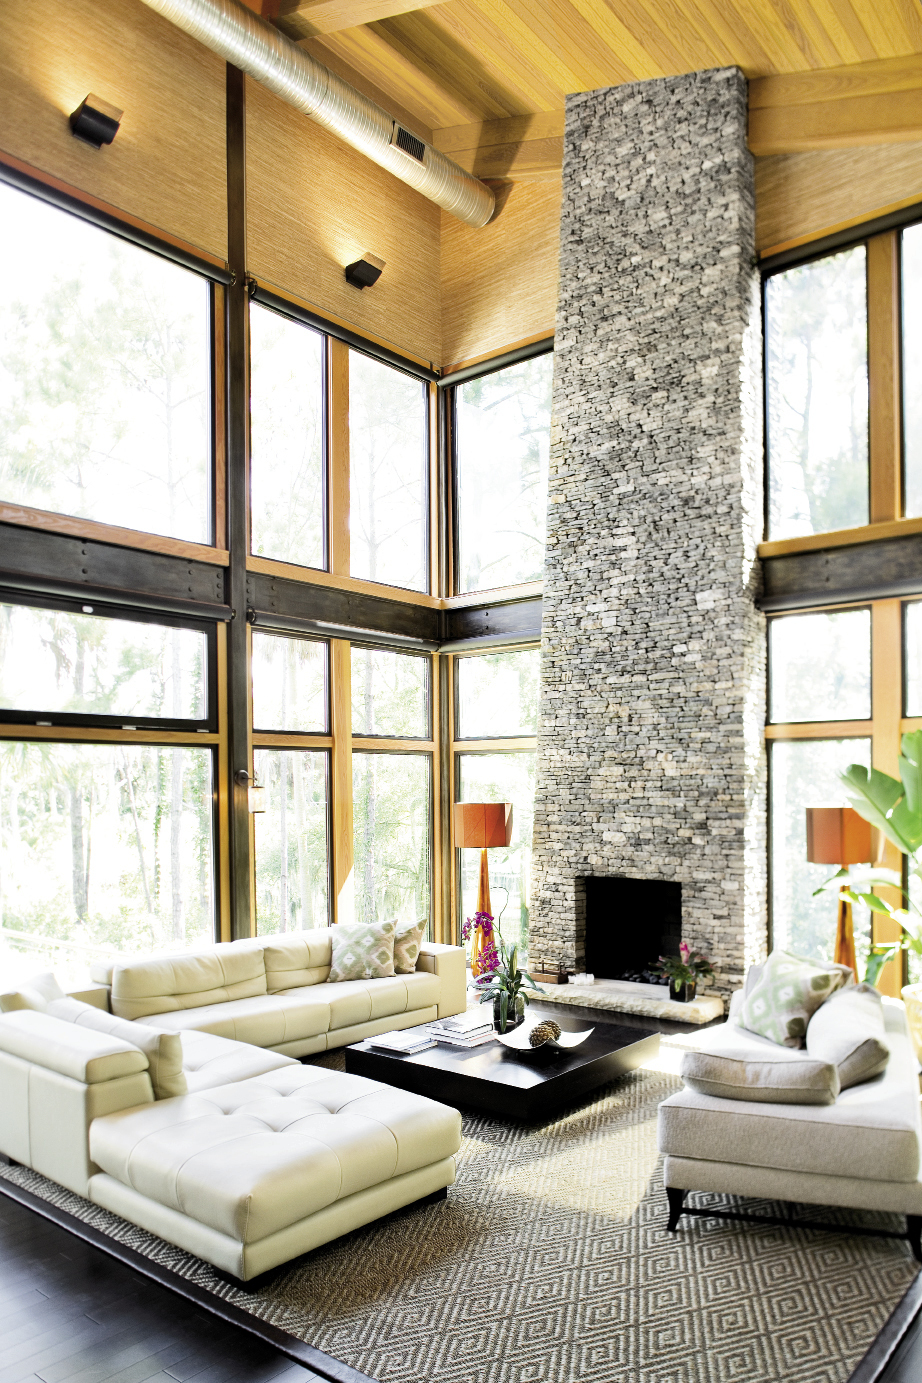 Chris opted to keep the home's sturdy steel framing exposed in the lofty great  room, which features a 27-foot stacked  stone